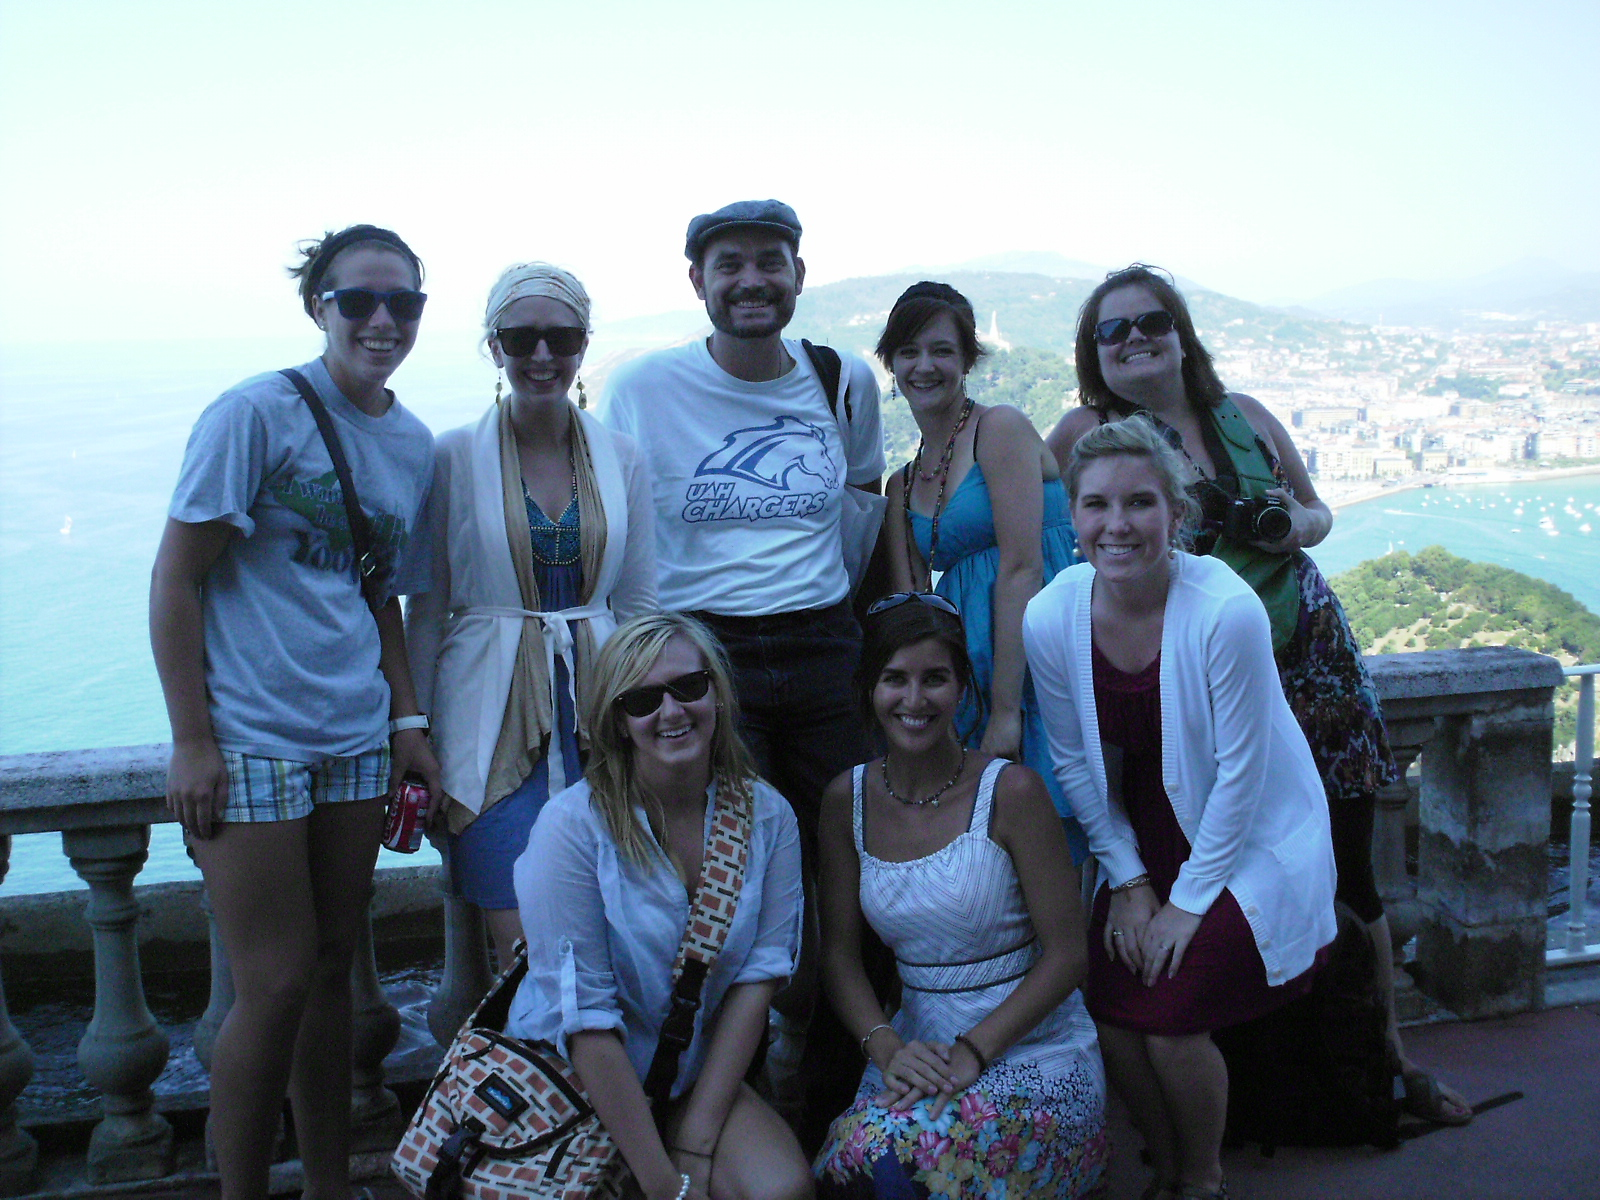 Groups of students in San Sebastian, Spain